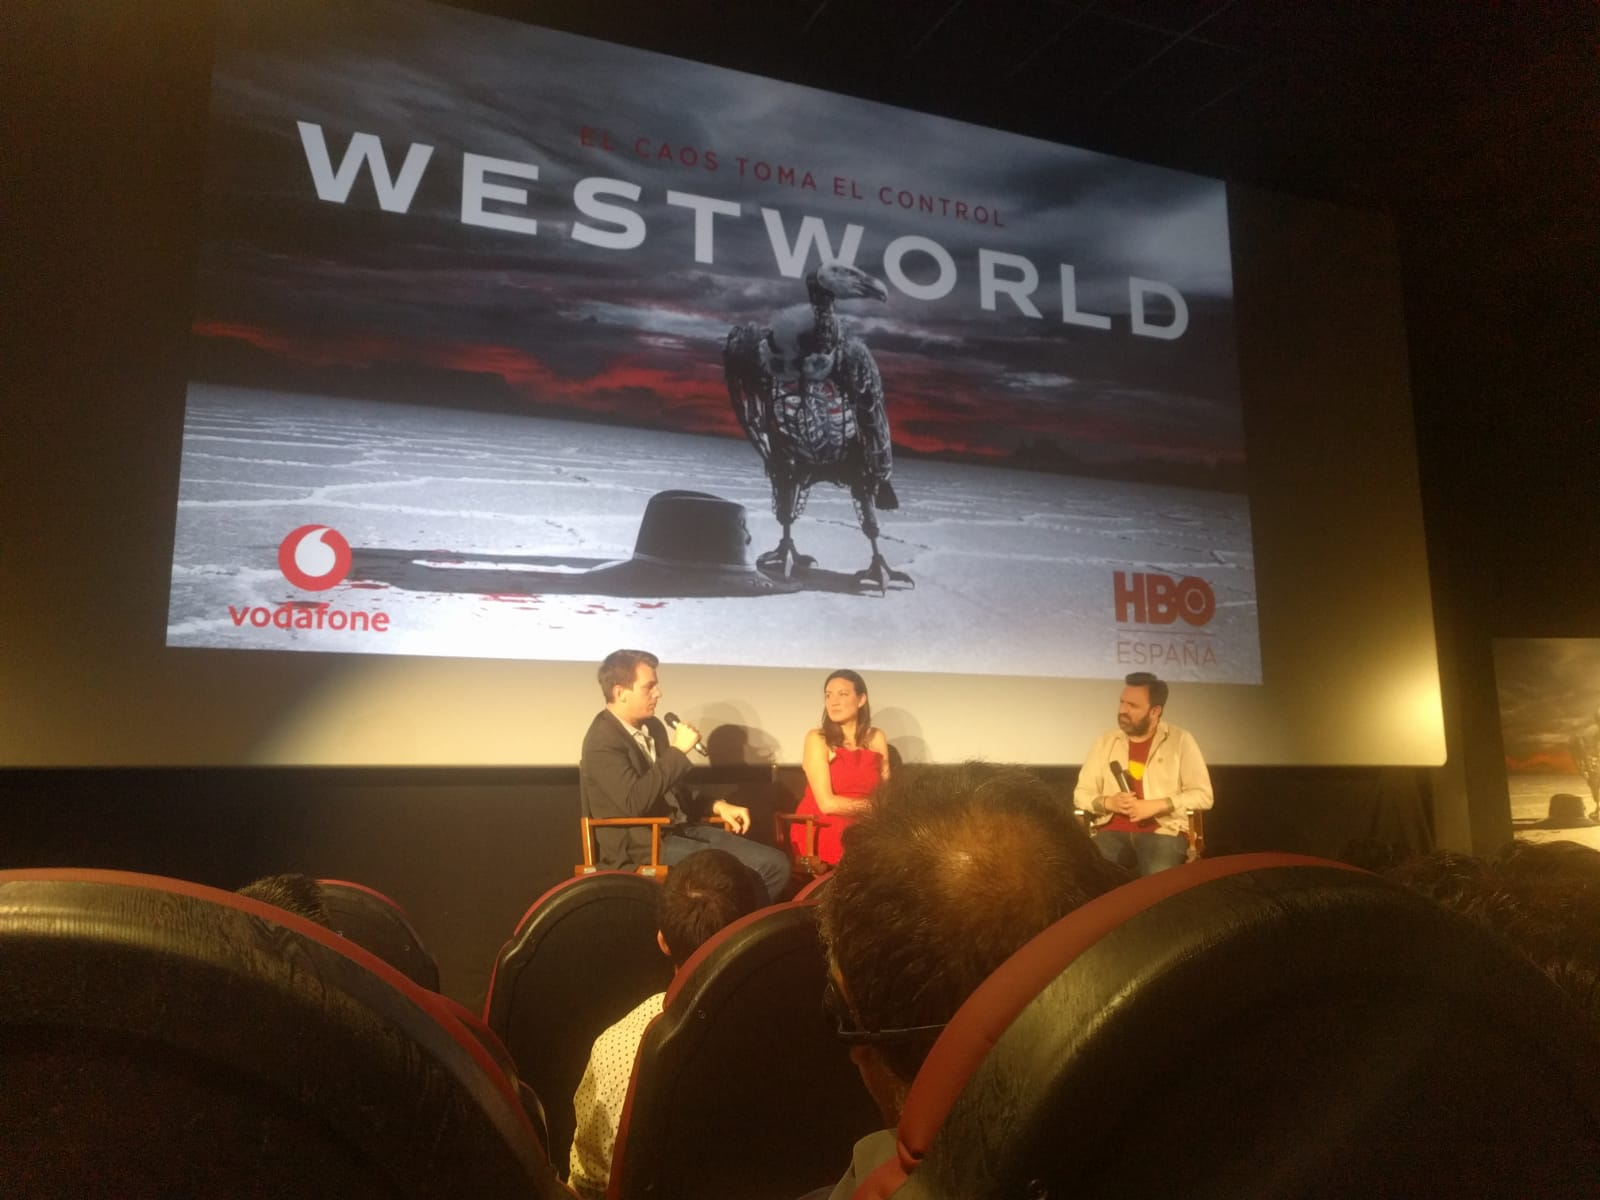 Westworld screening 3